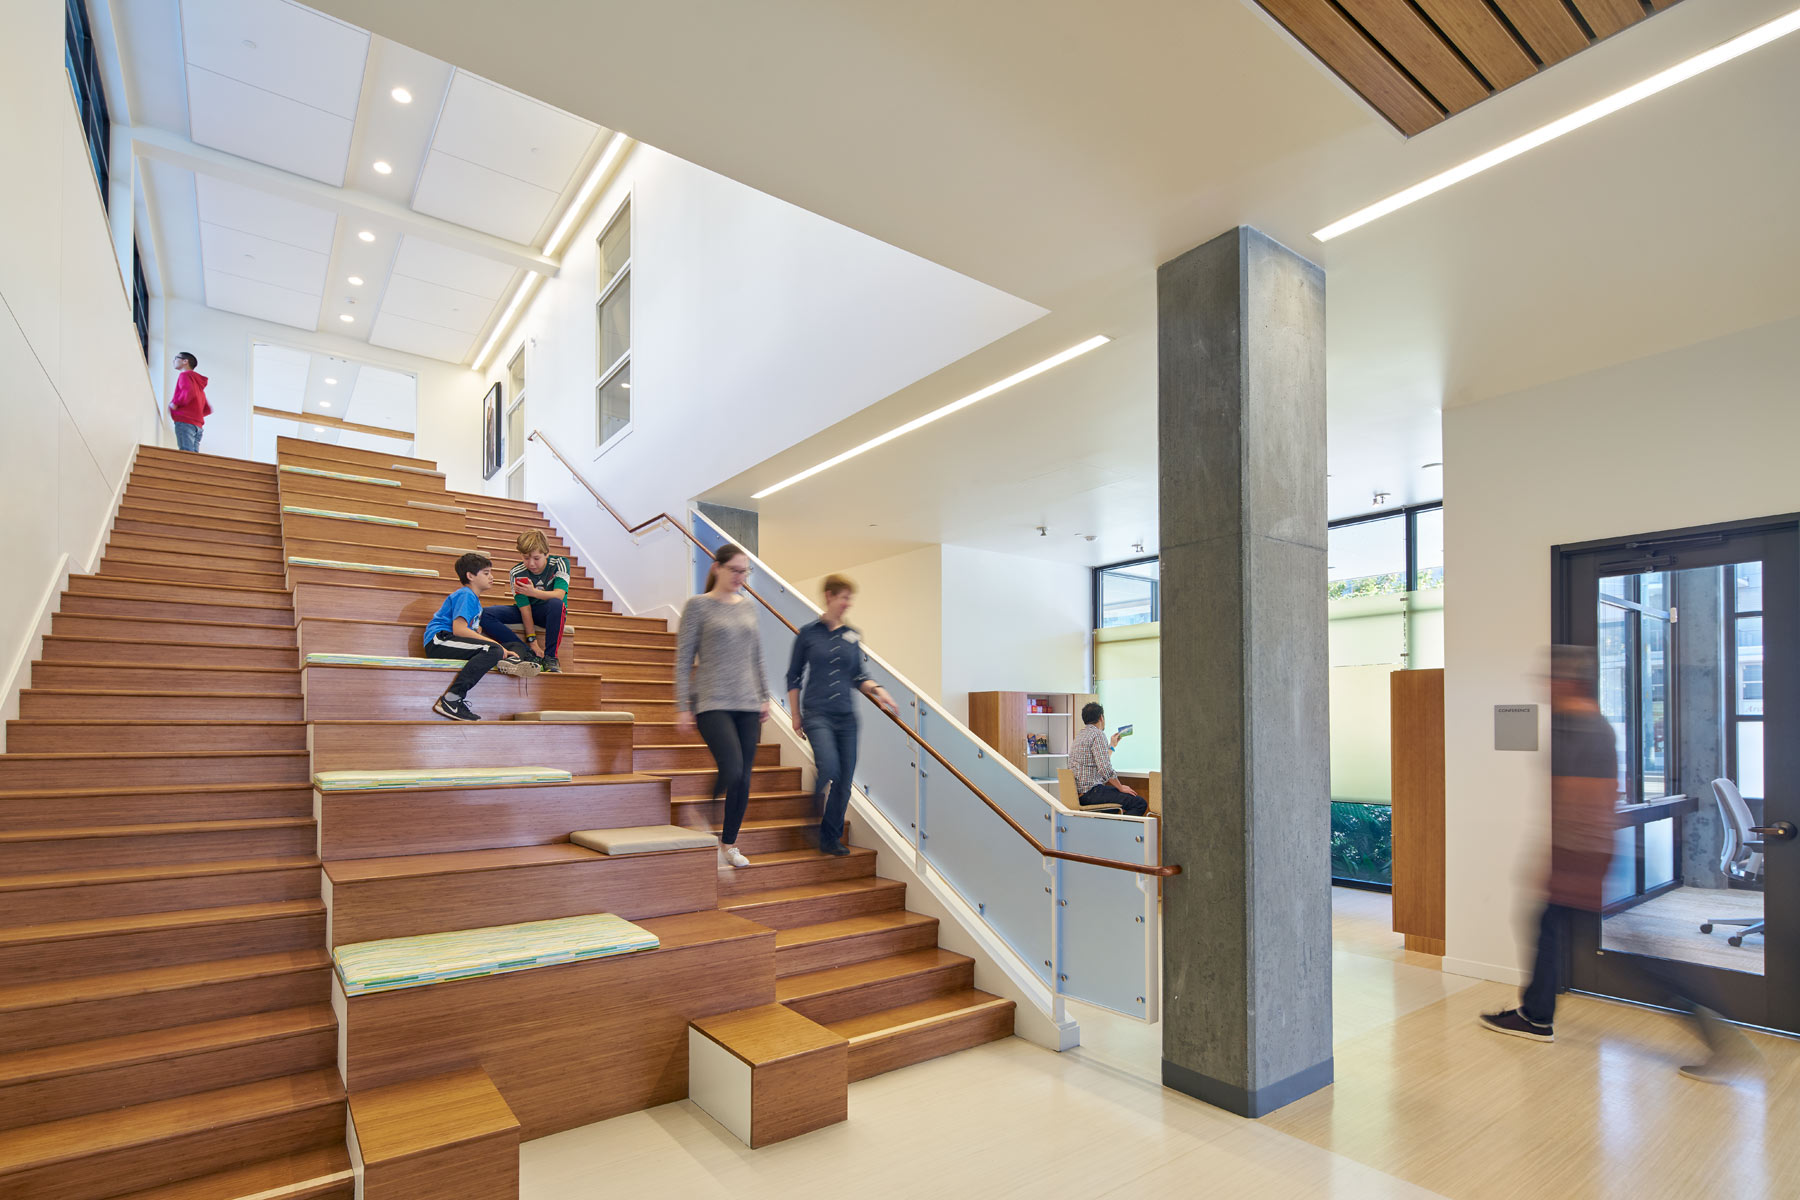 The Nancy and Stephen Grand Family House is a LEED Platinum certified home that provides a comforting, supportive, and sustainably healthy environment for families whose children are being treated at the nearby UC San Francisco Benioff Children's Hospital.